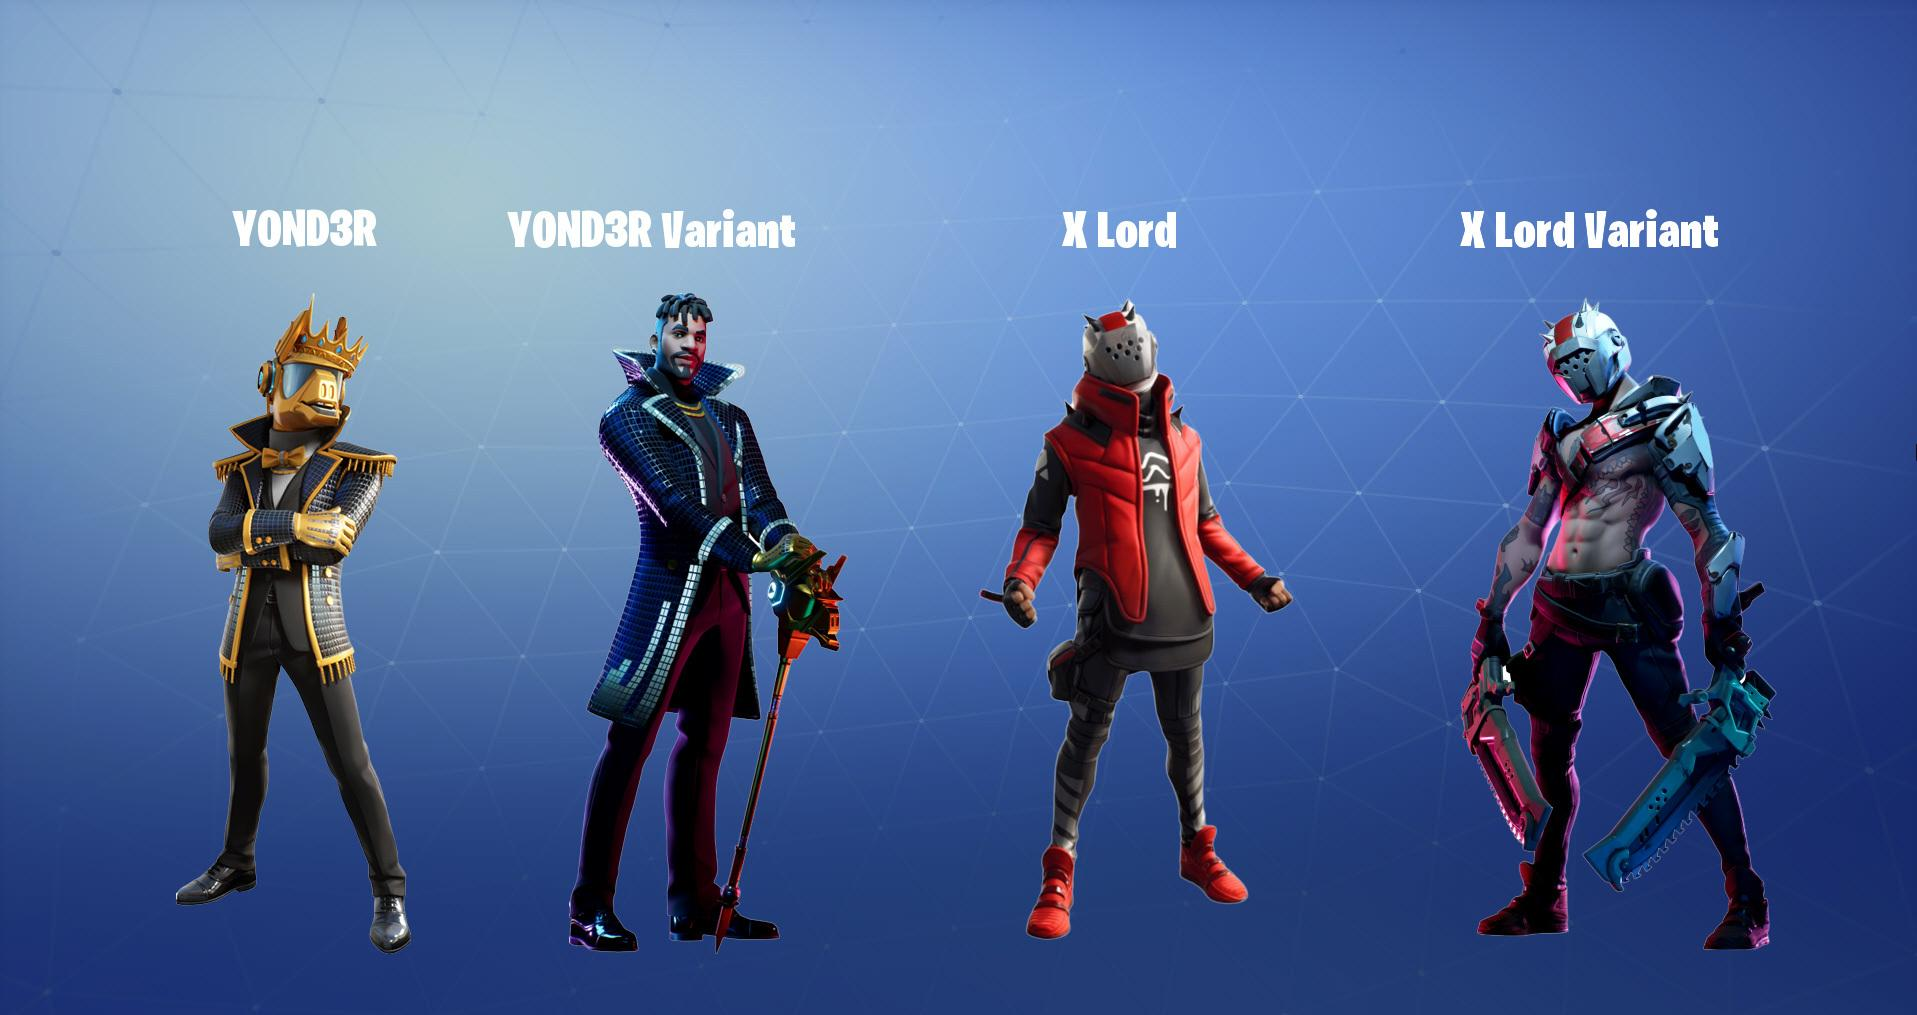 Fortnite X Lord Wallpapers Top Free Fortnite X Lord Backgrounds Wallpaperaccess